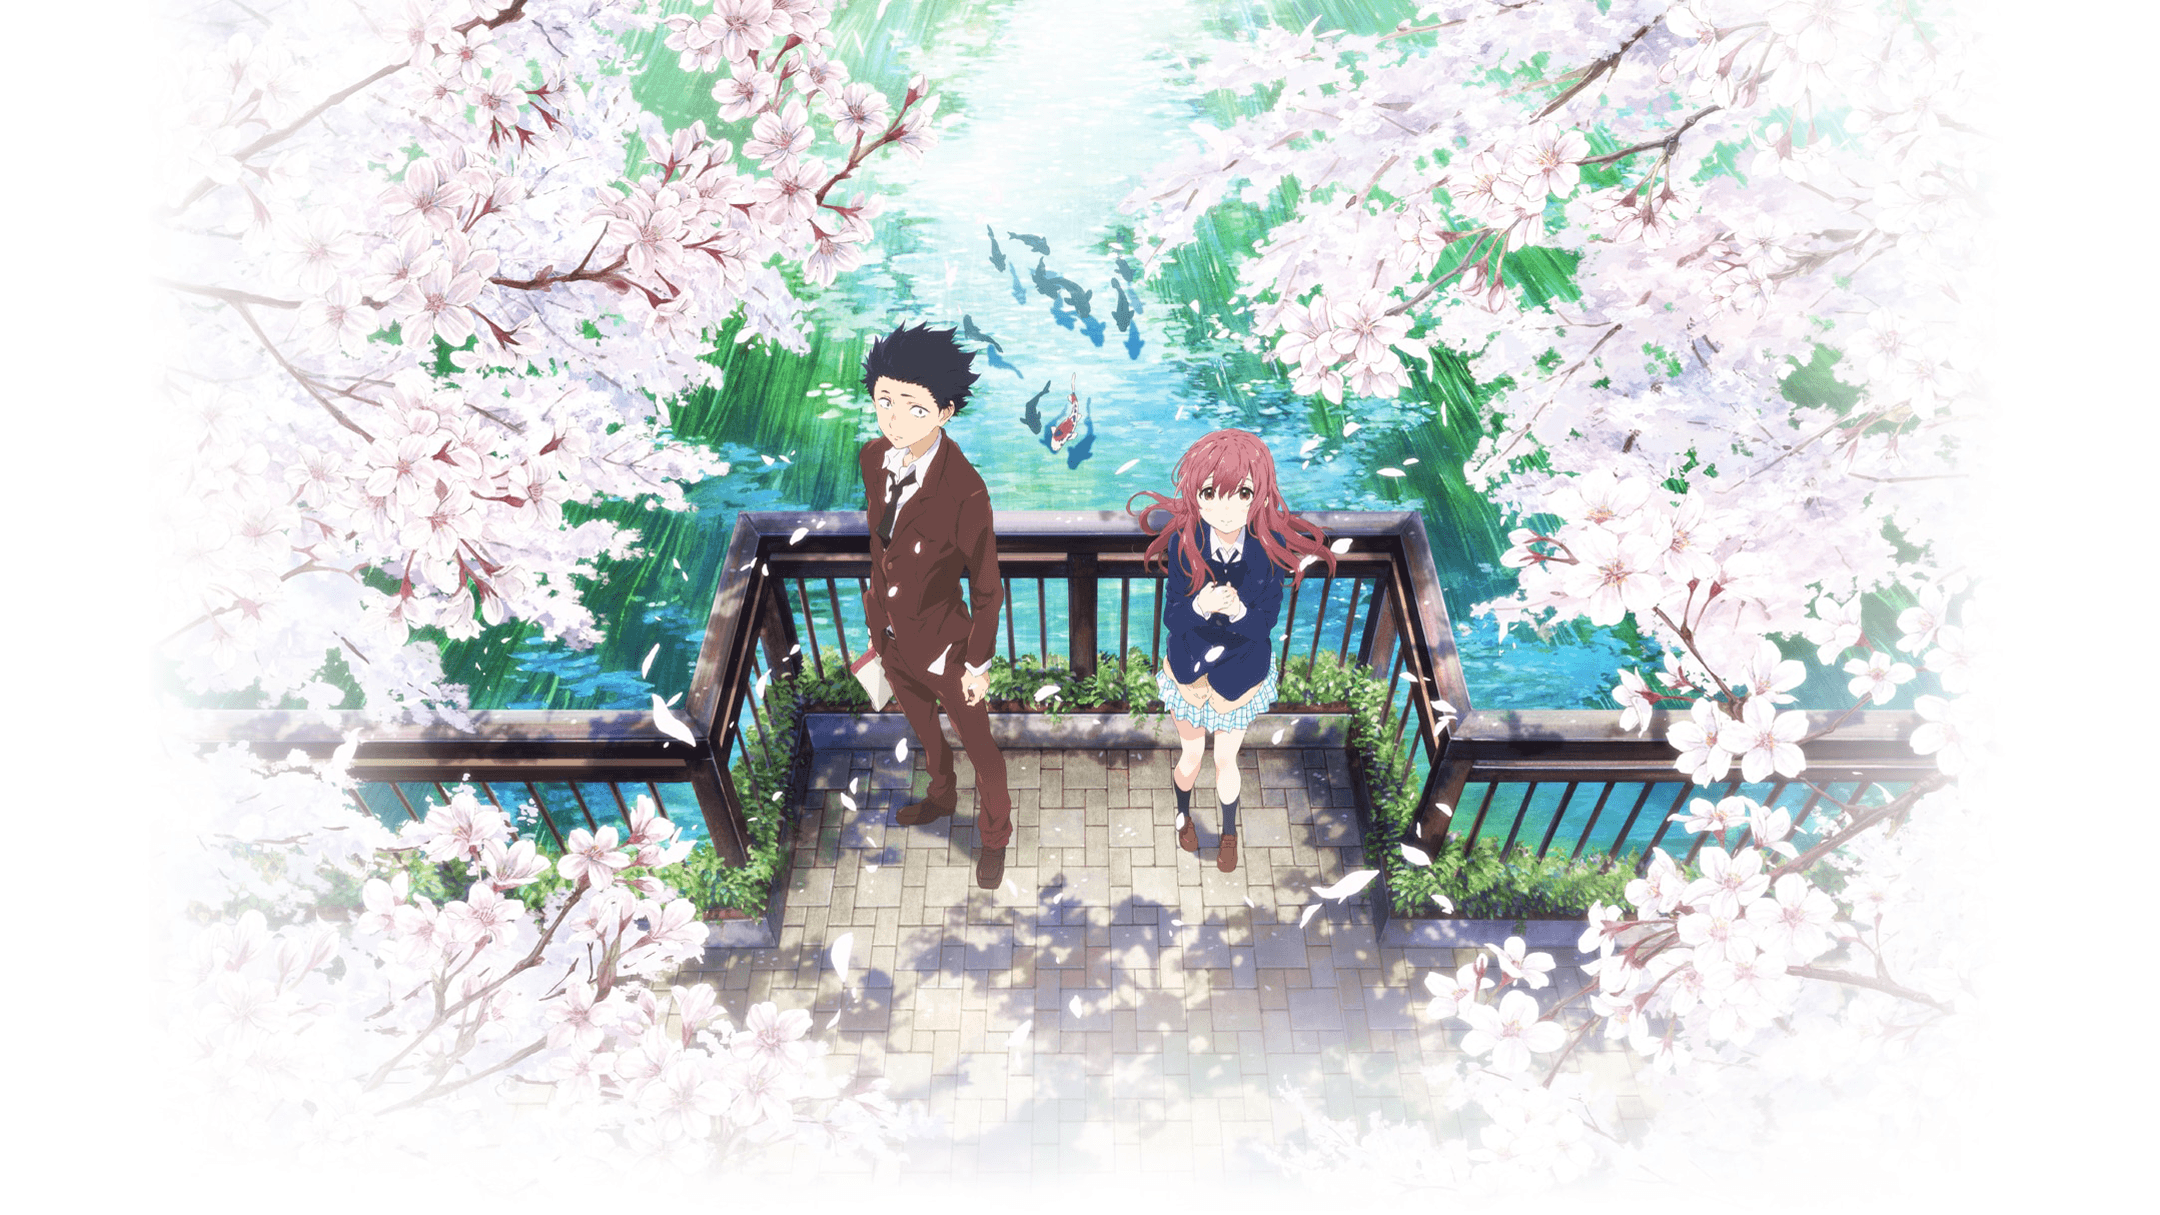 275 Koe No Katachi HD Wallpapers | Backgrounds - Wallpaper Abyss